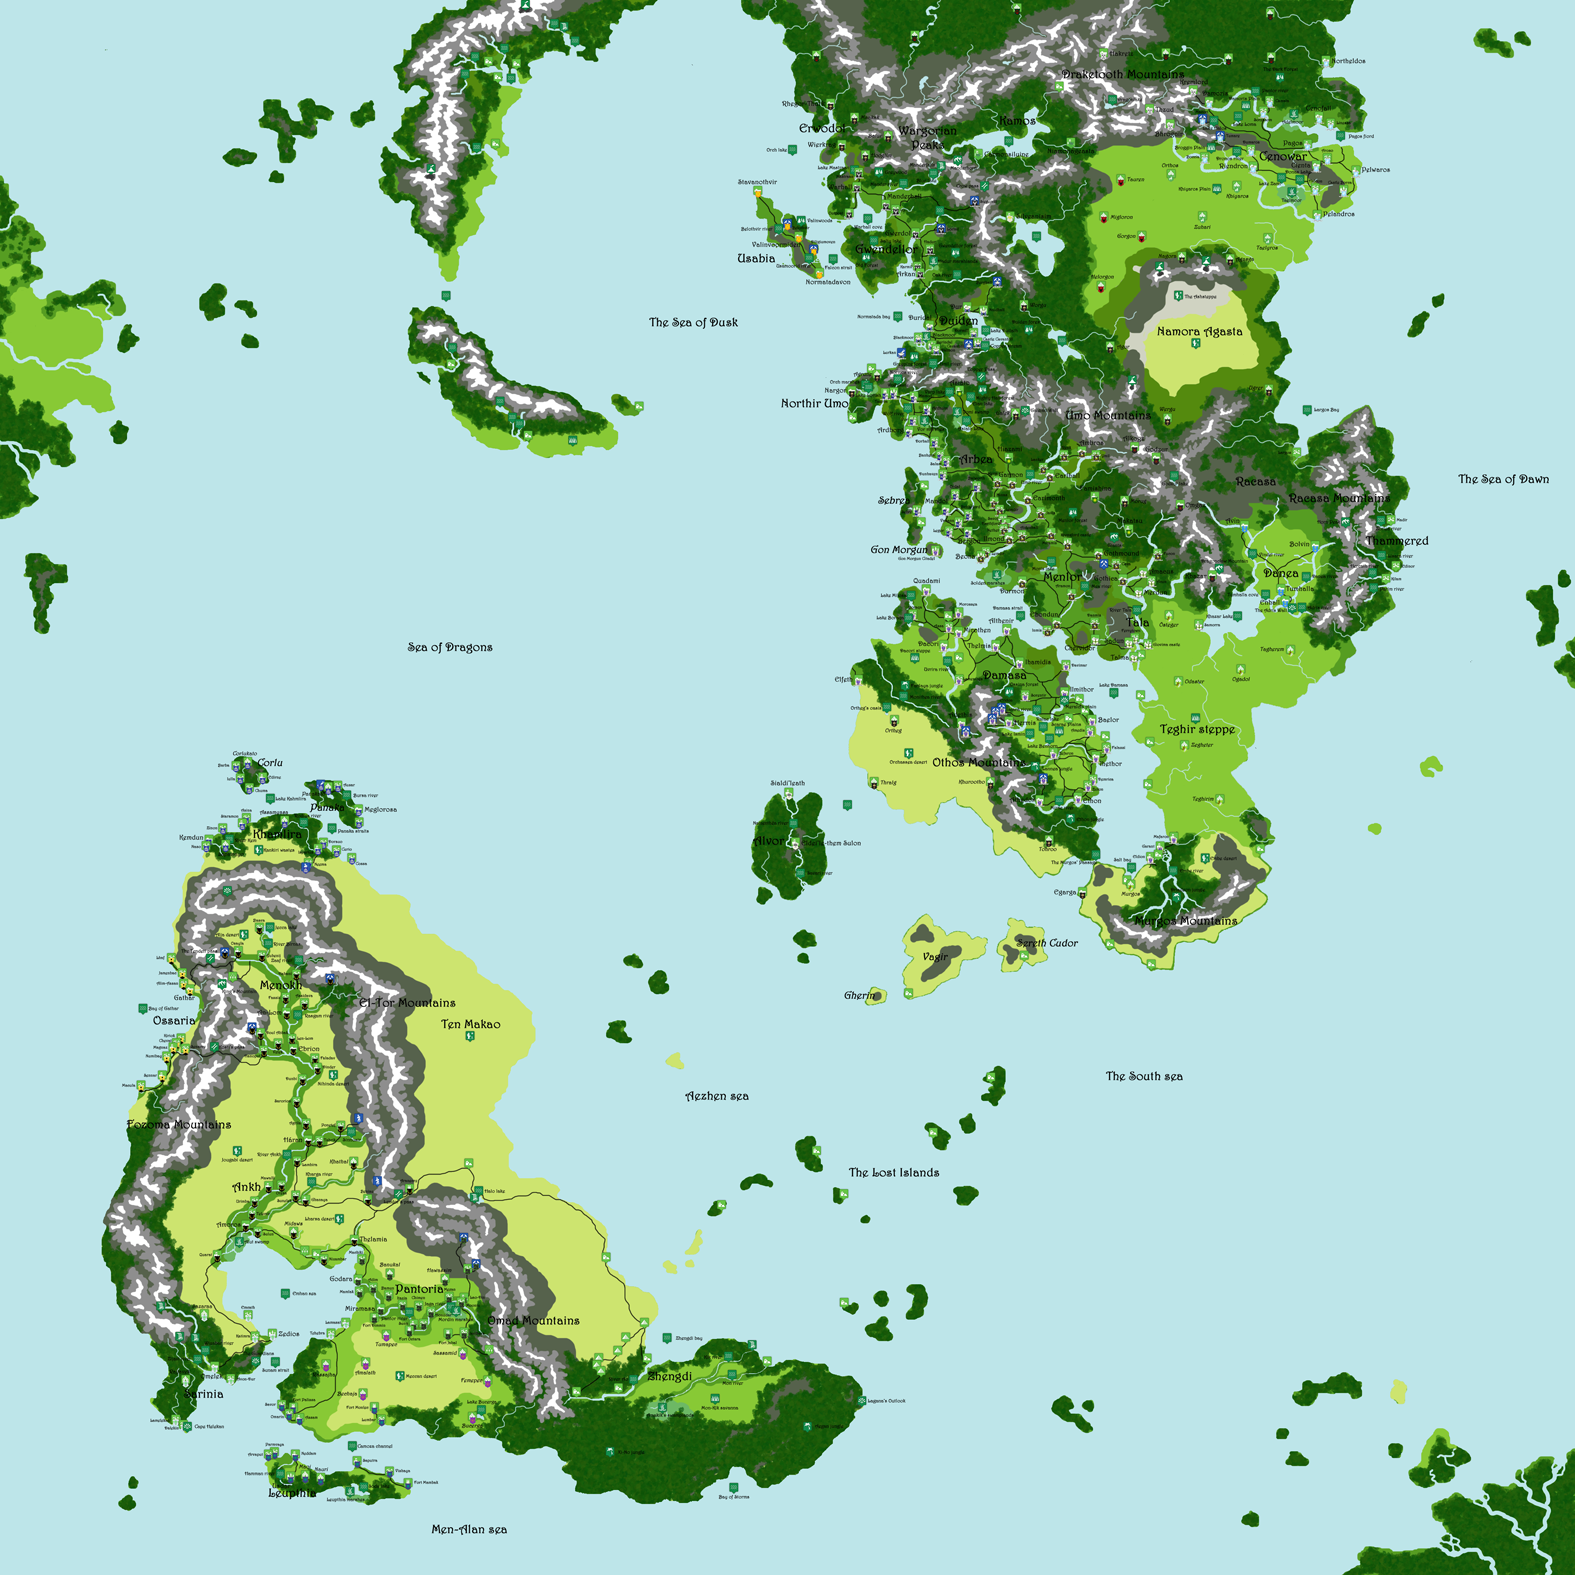 Centuria world map age of steel a current project is to expand the map to include more lands intended to be chartered during the age of knowledge while the current map is 40x40cm and gumiabroncs Choice Image